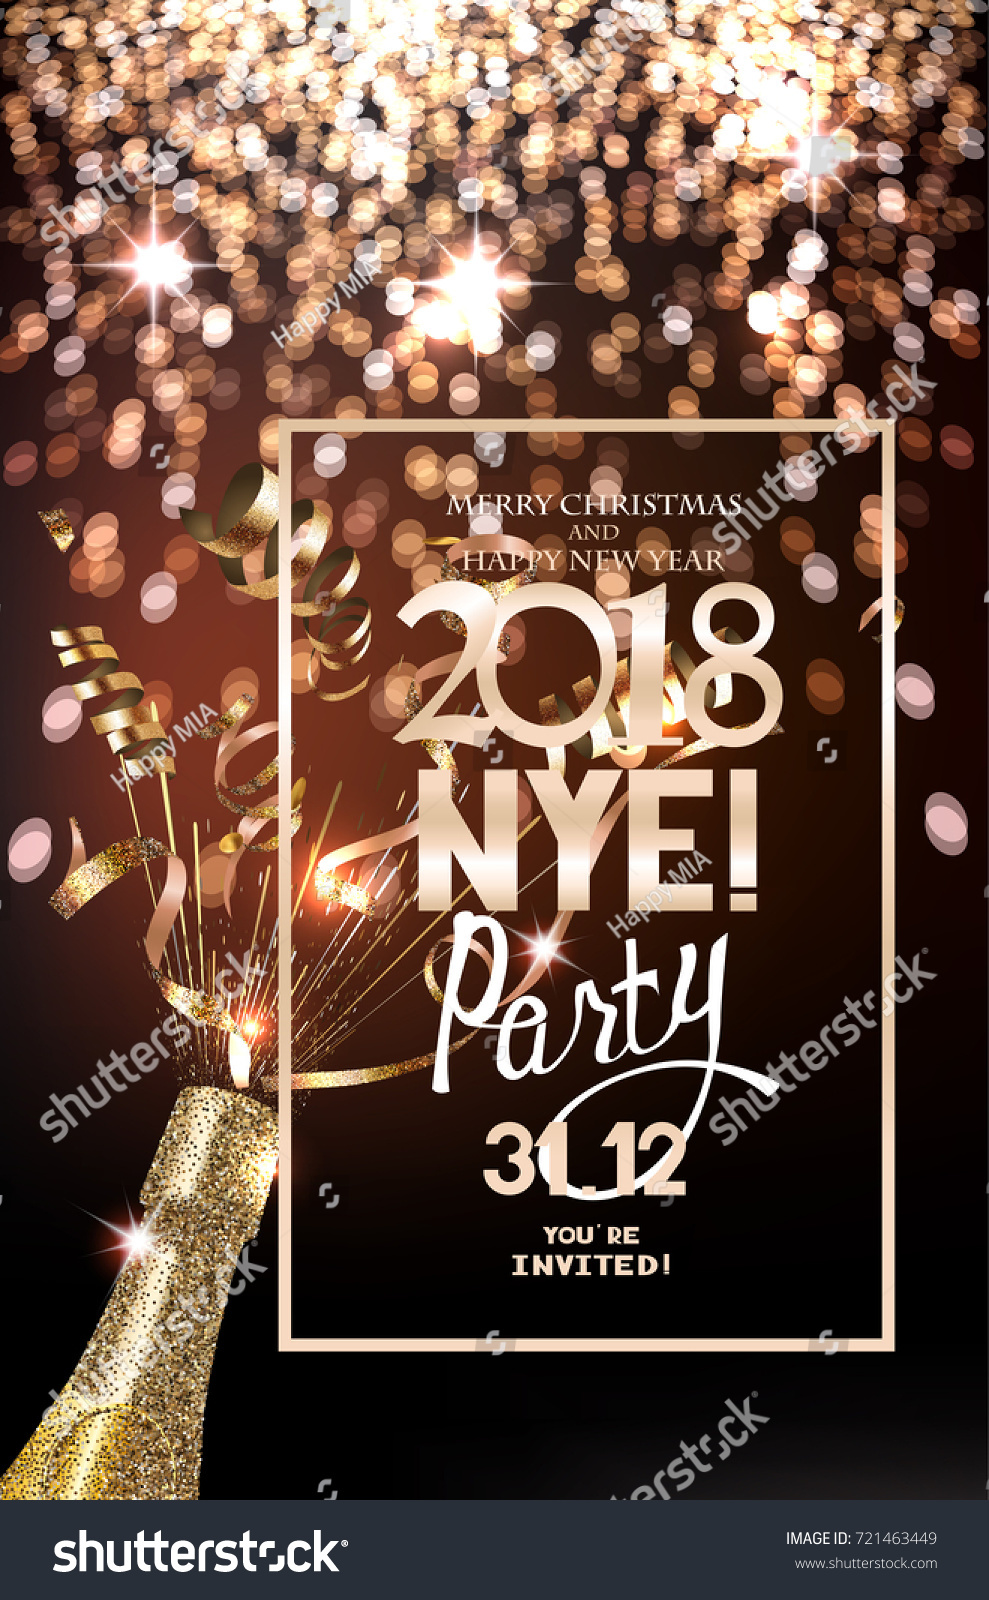 new year eve party invitation card with defocused lights on the background bottle of champagne